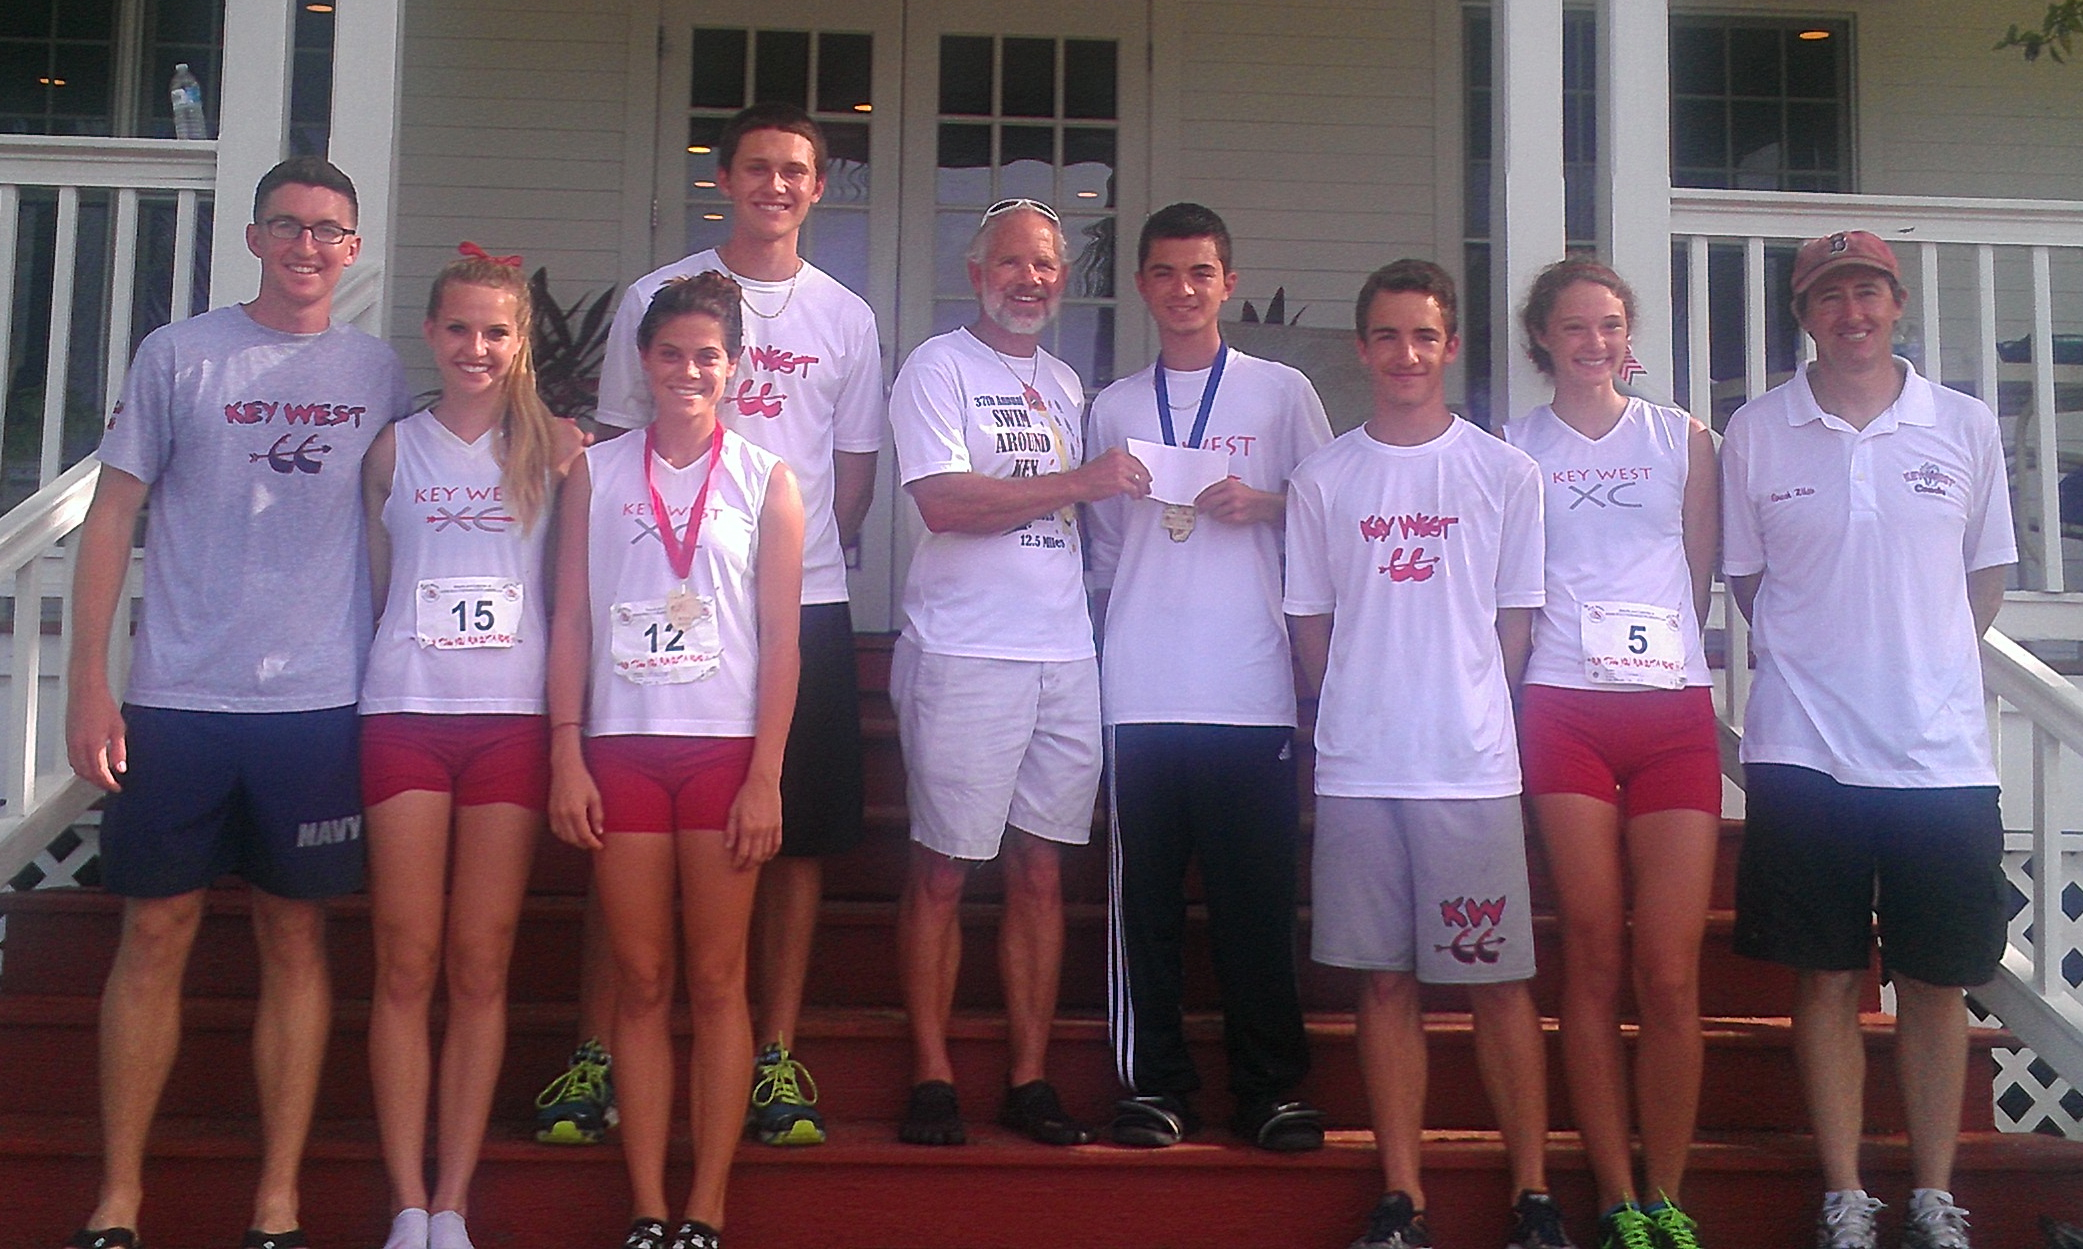 Presenting a donation check to the Key West Cross Country Team